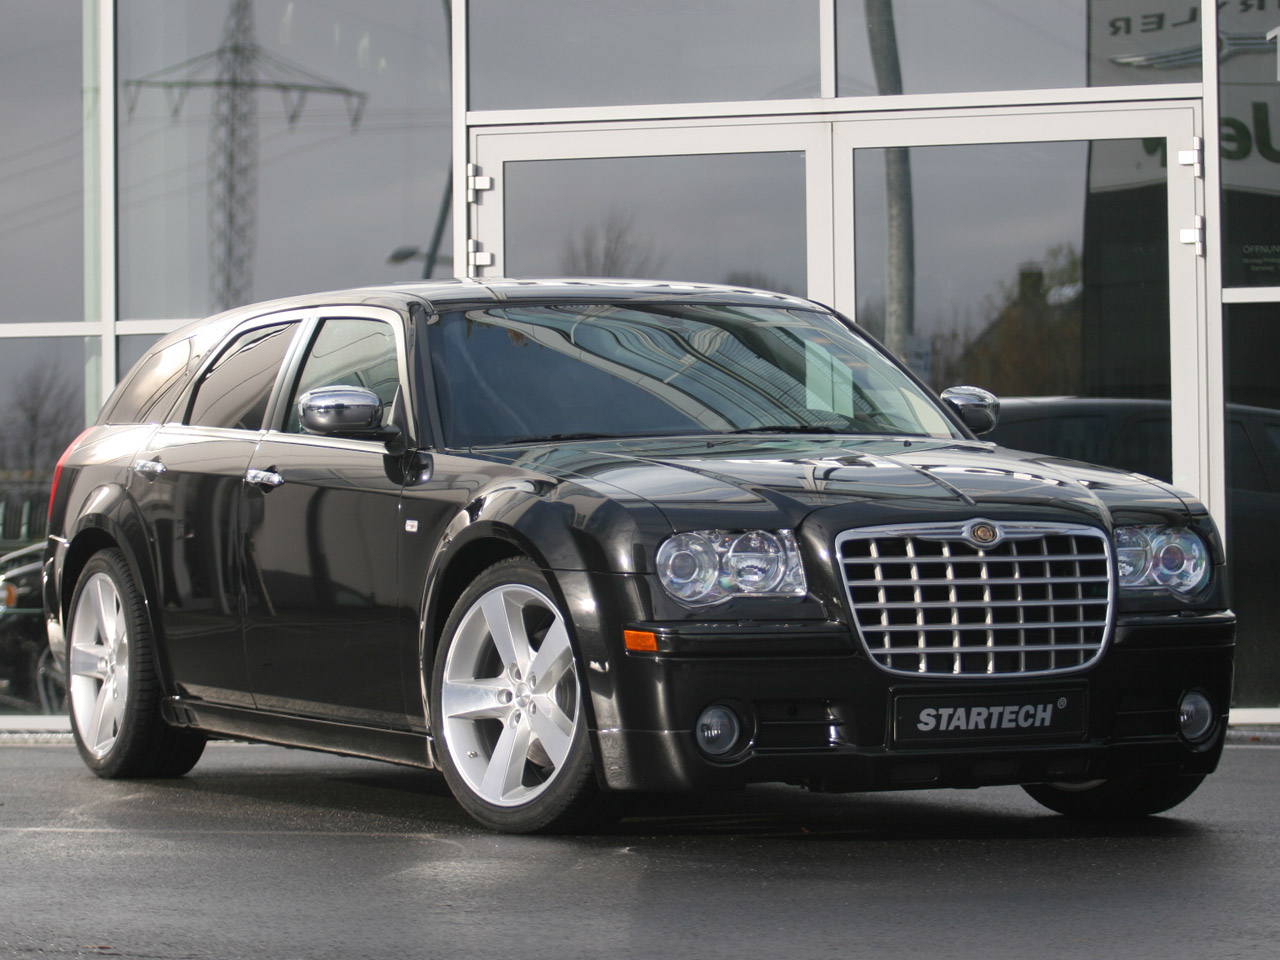 Chrysler Cars 4 Cool Car Hd Wallpaper